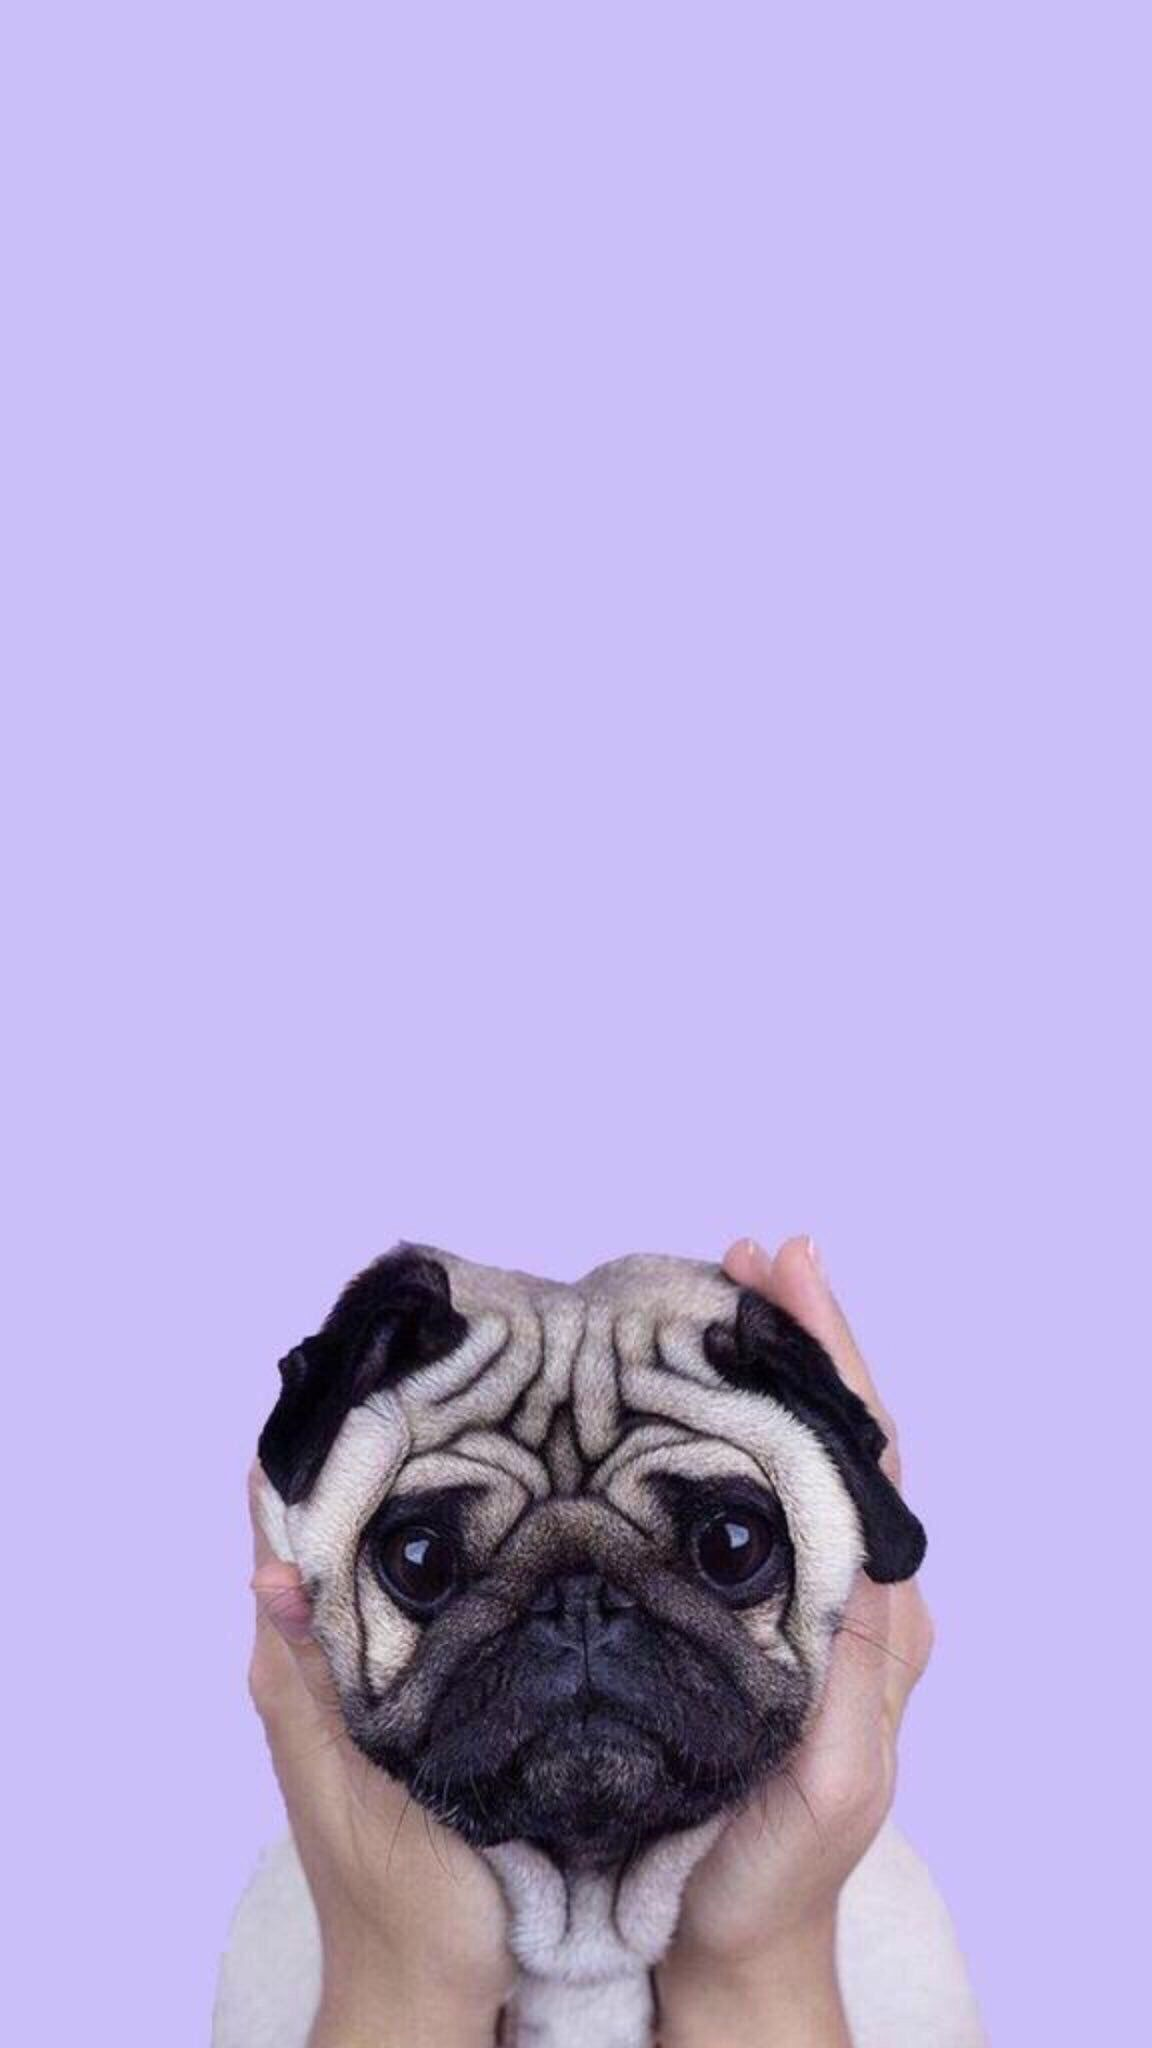 Love That Squishy Face Cute Dog Wallpaper Dog Wallpaper Iphone Pug Wallpaper